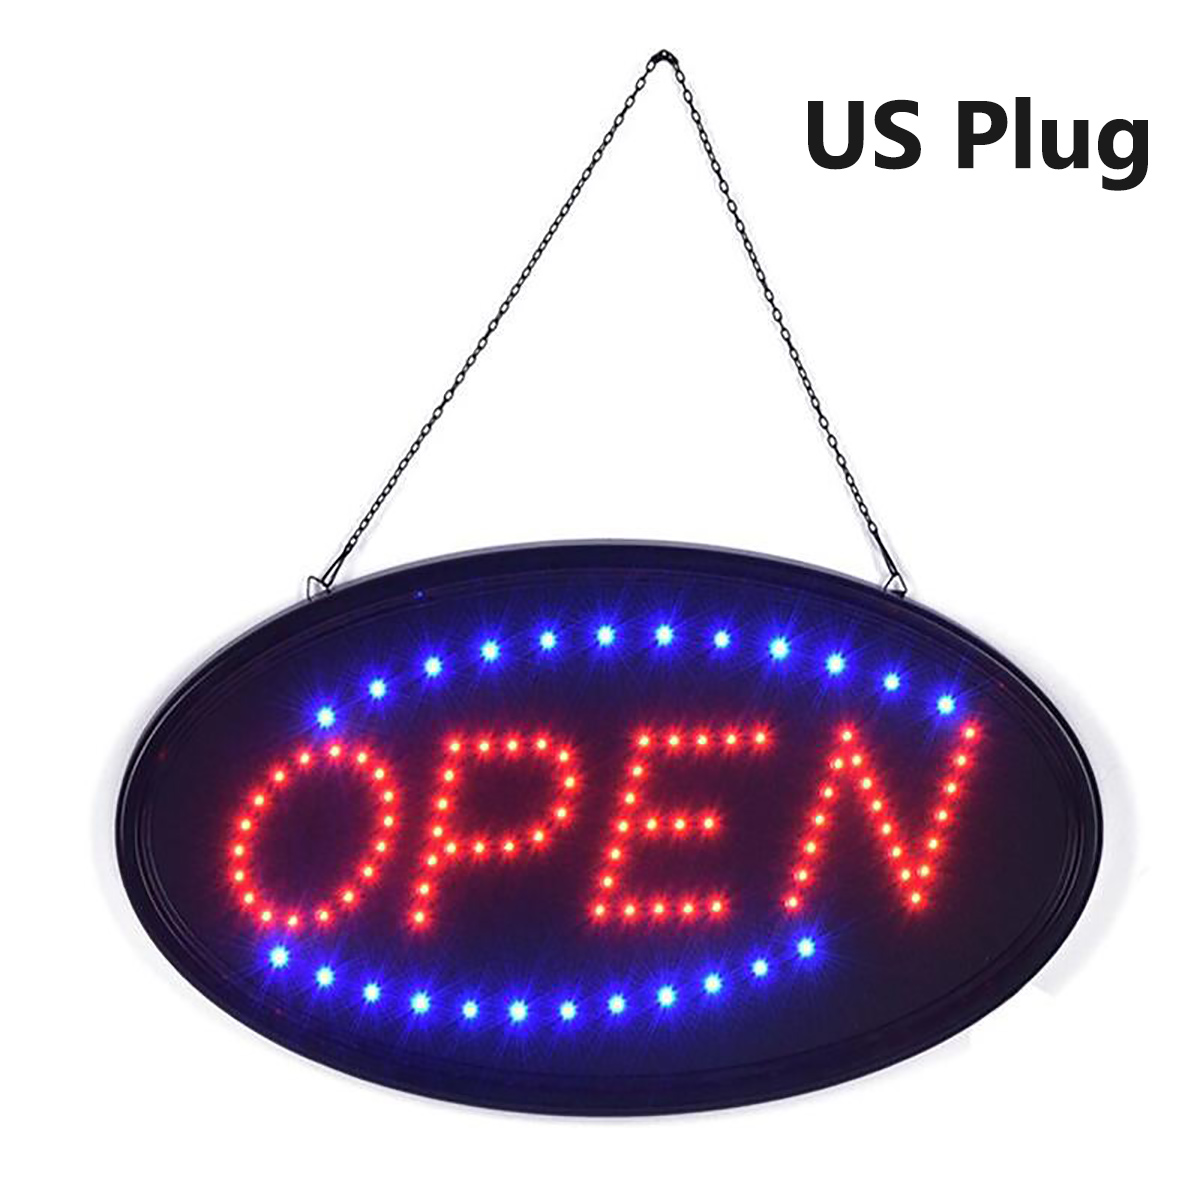 On//Off with Chain Shop Display Bar Led Neon Motion Light Sign Details about  /LED Bar Sign